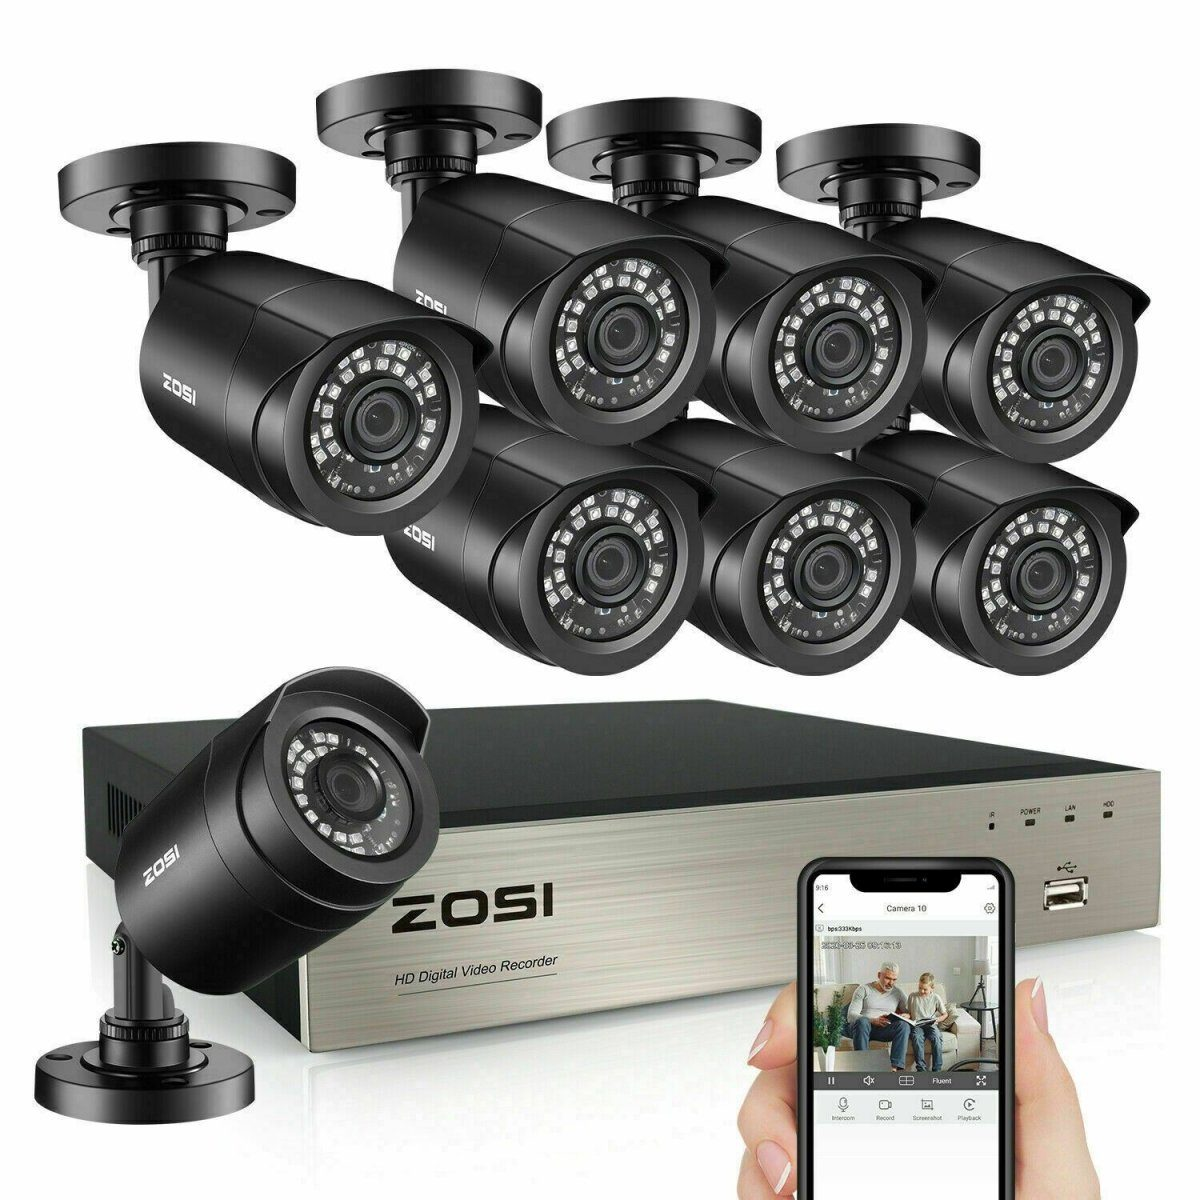 ZOSI 1080p Home Security Camera - Fix Or Cell Now Device Shop